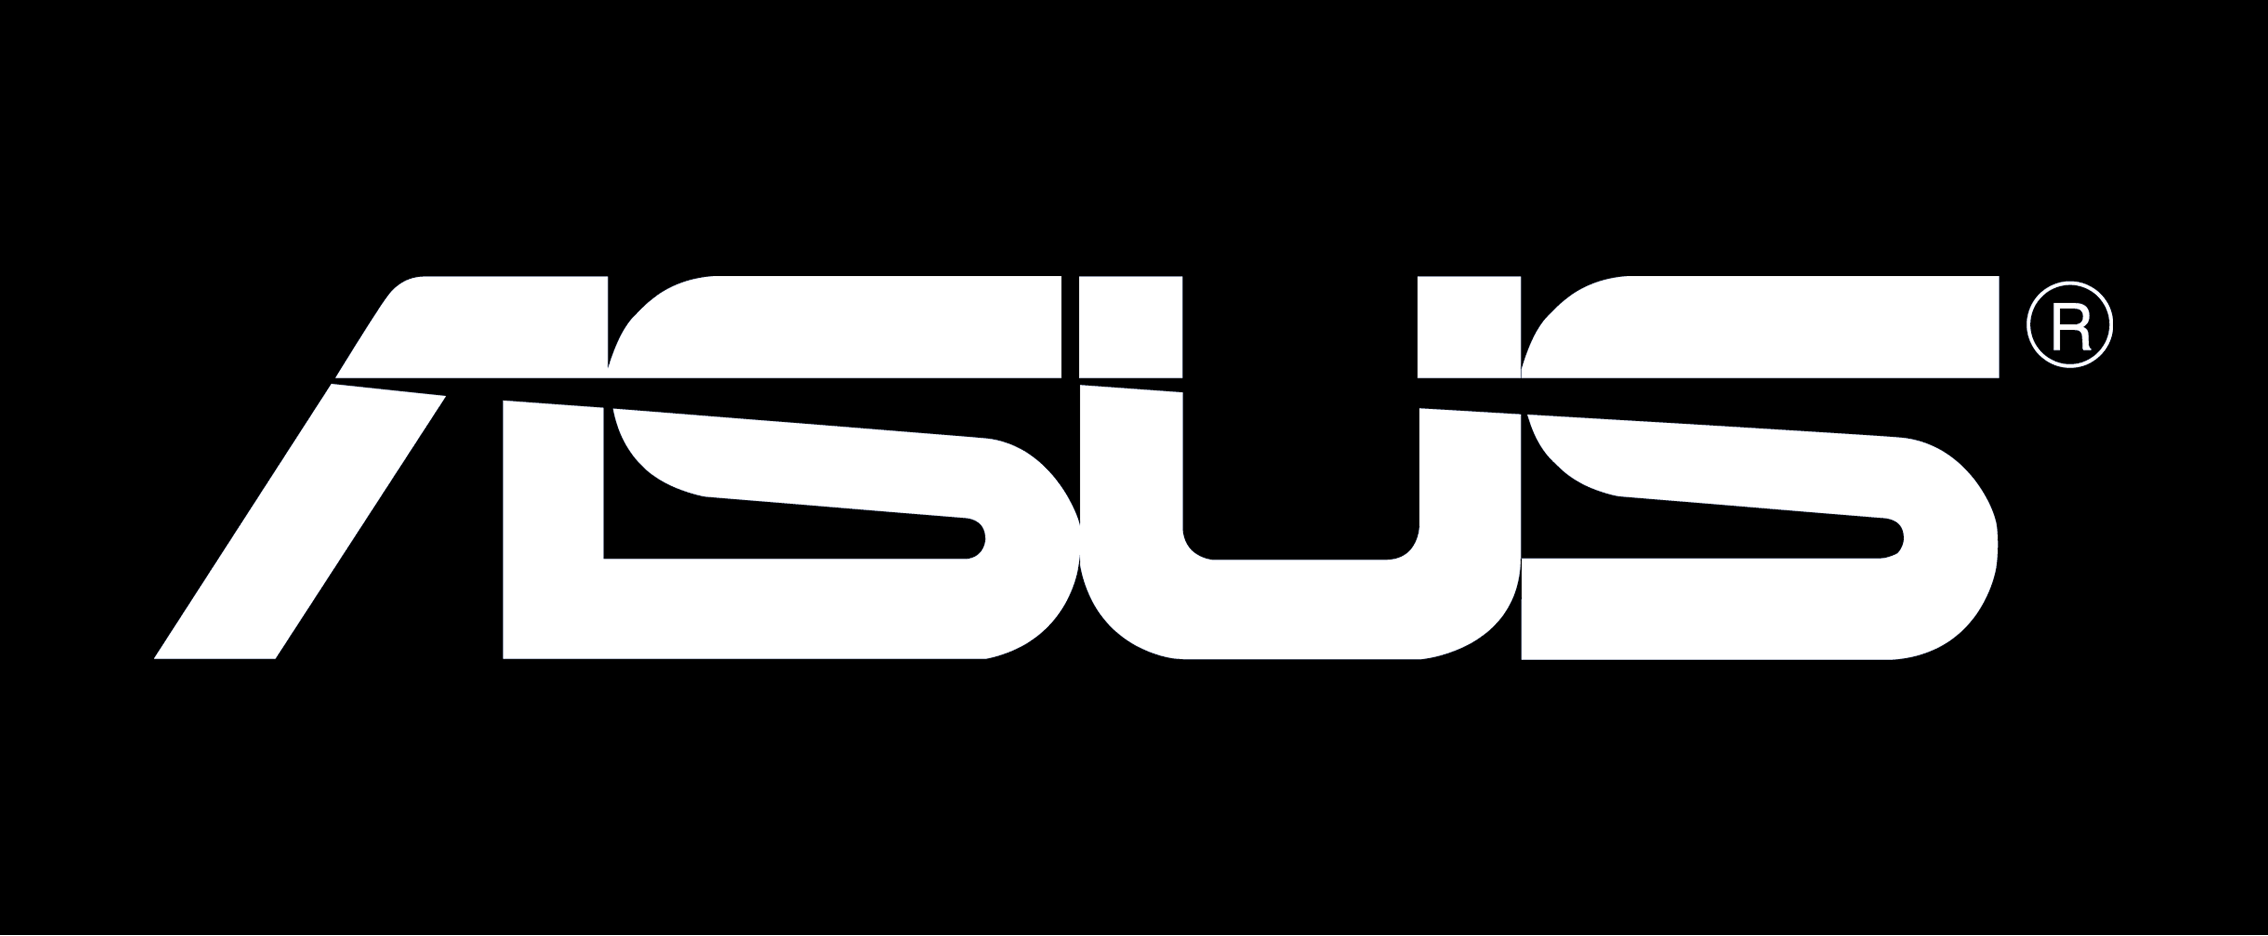 http://www.ghidonimarco.it/wp-content/uploads/2016/02/ASUS-Logo-1.png